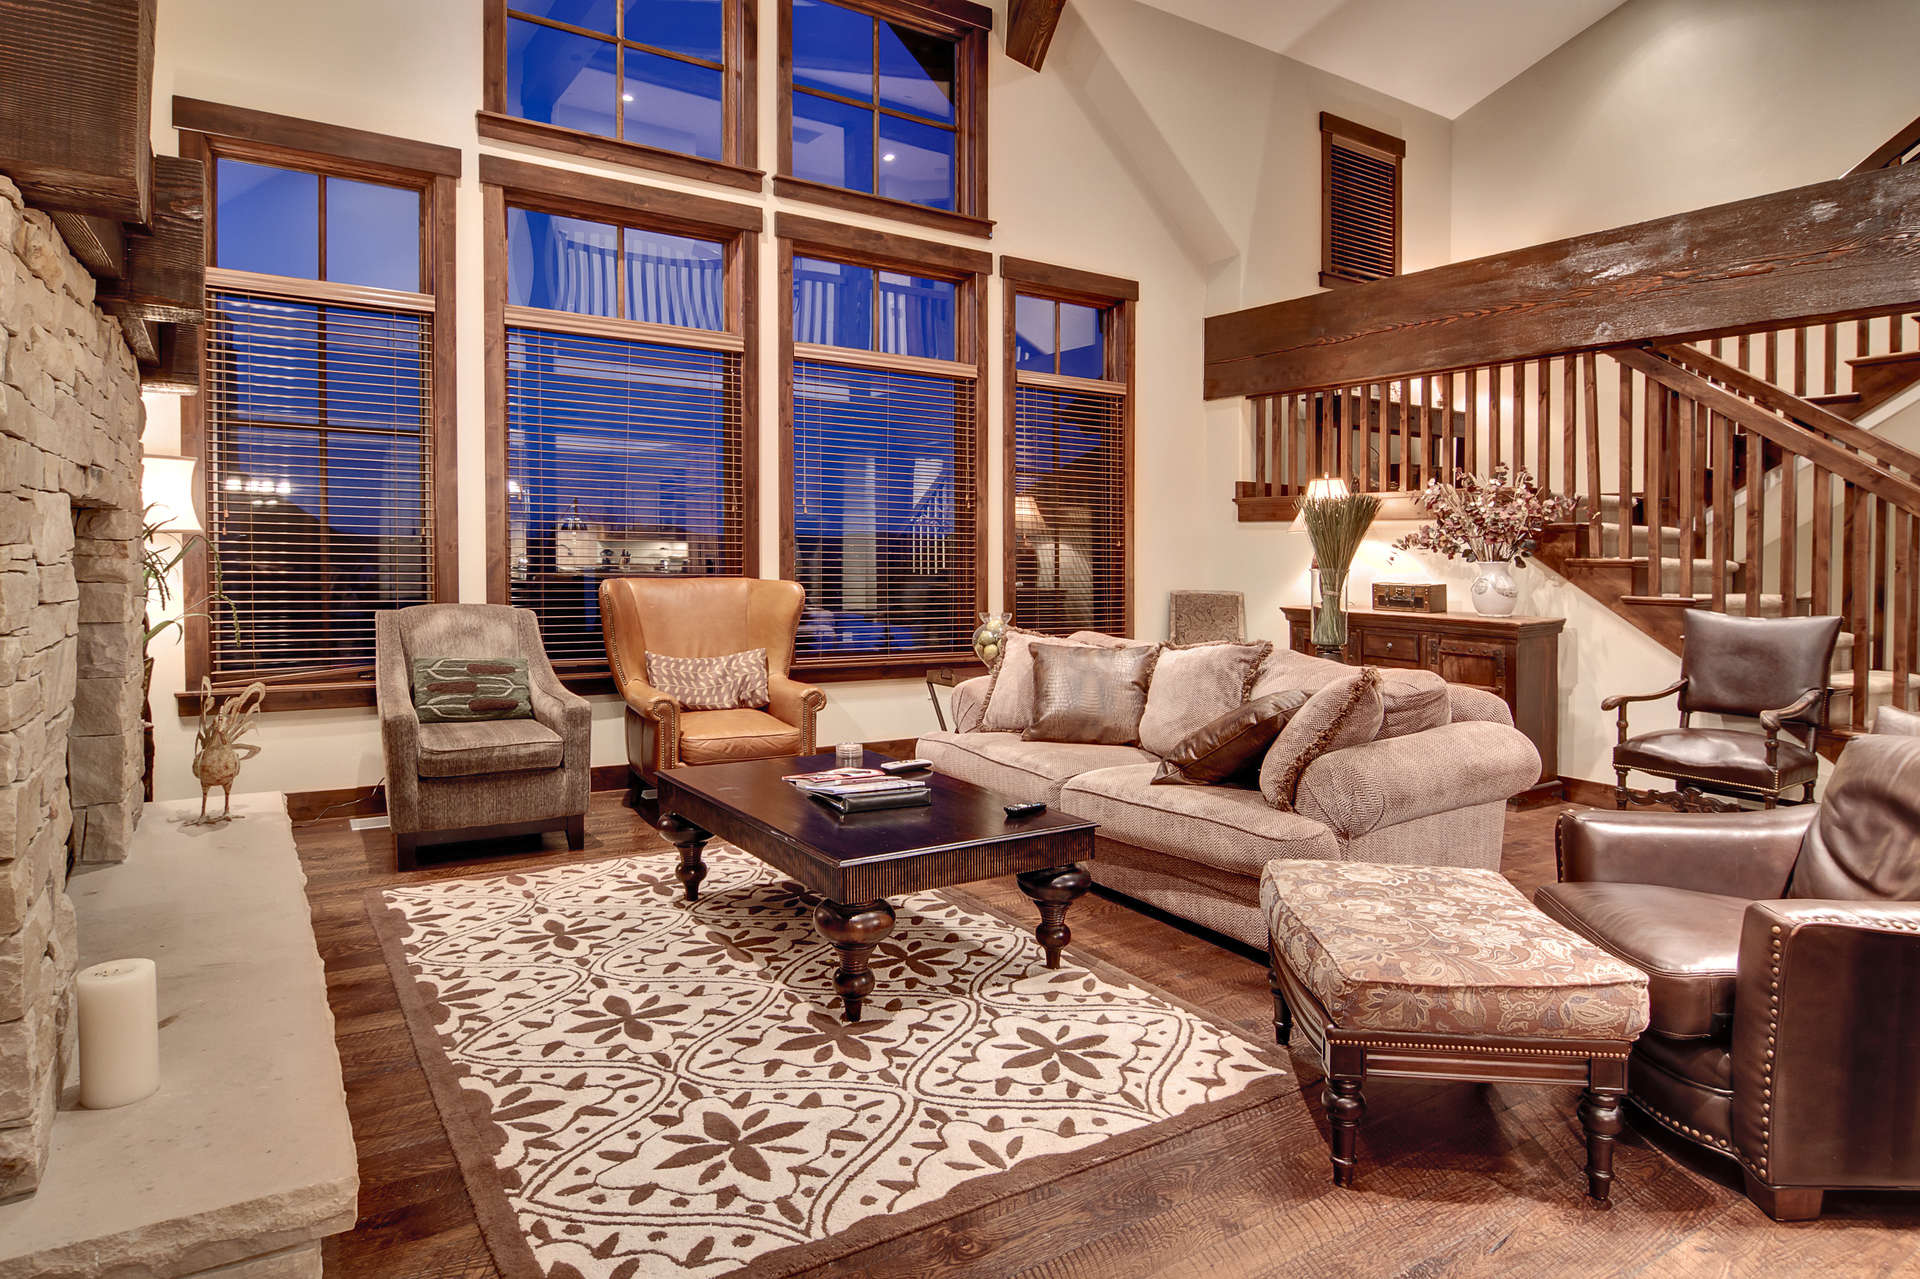 Luxury vacation rentals usa - Utah - Park city silver star - Silver Star 6 Bedroom Spa - Image 1/9